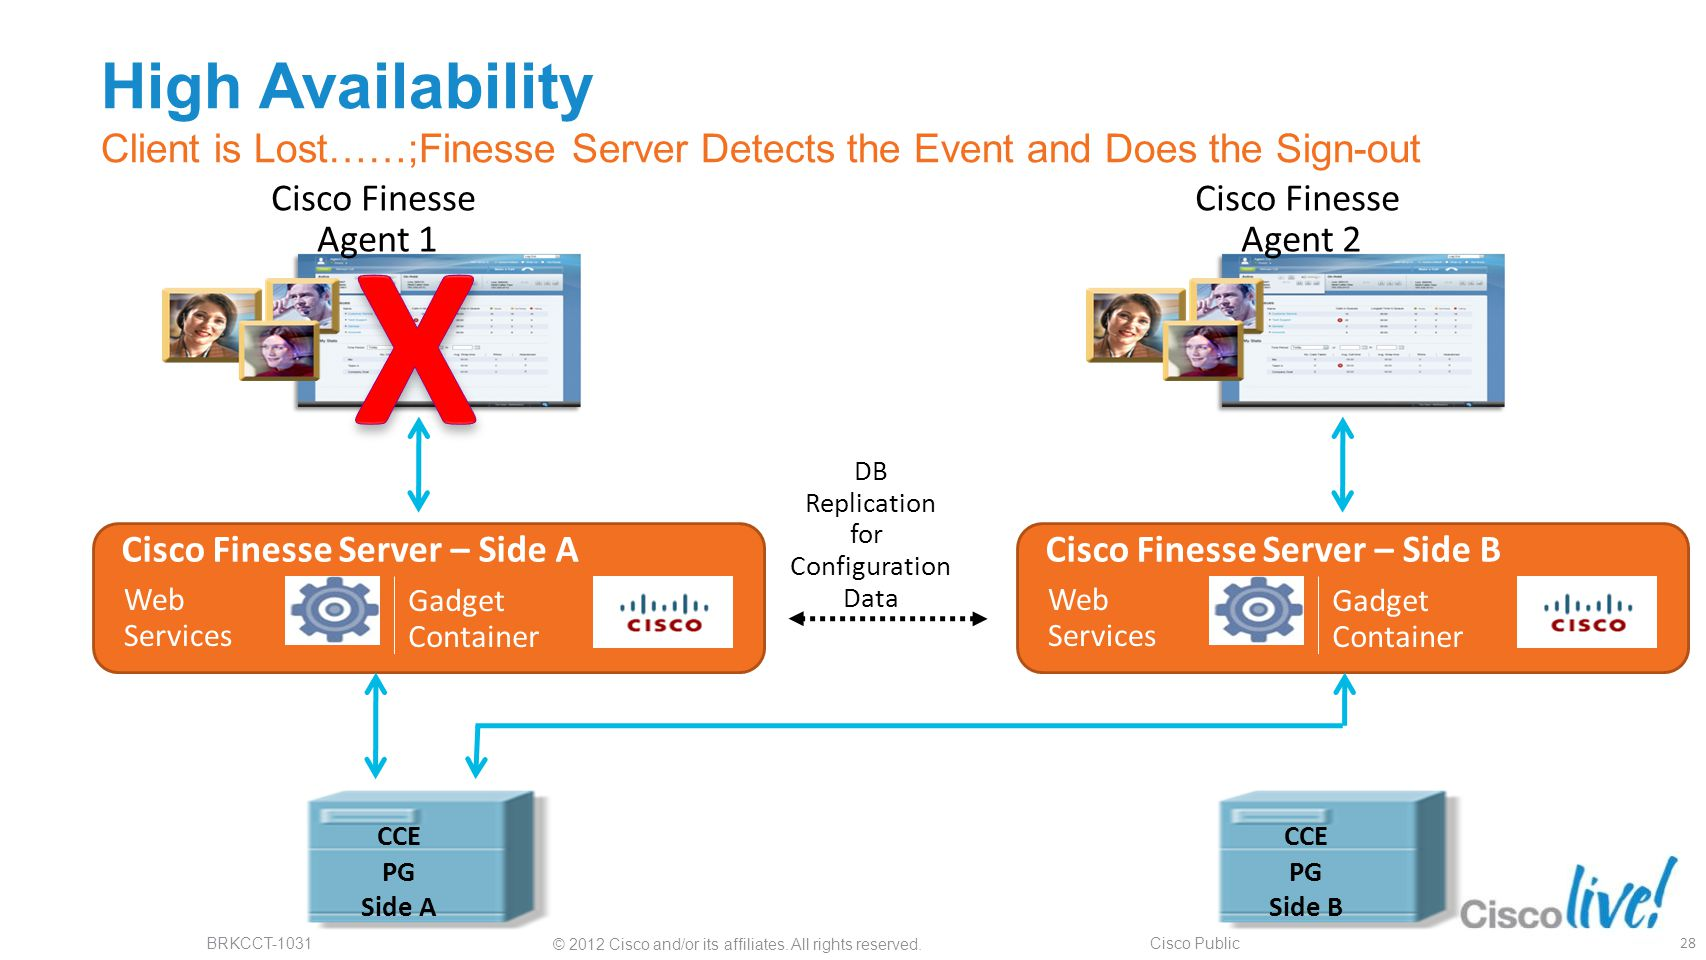 High Availability Client is Lost……;Finesse Server Detects the Event and Does the Sign-out